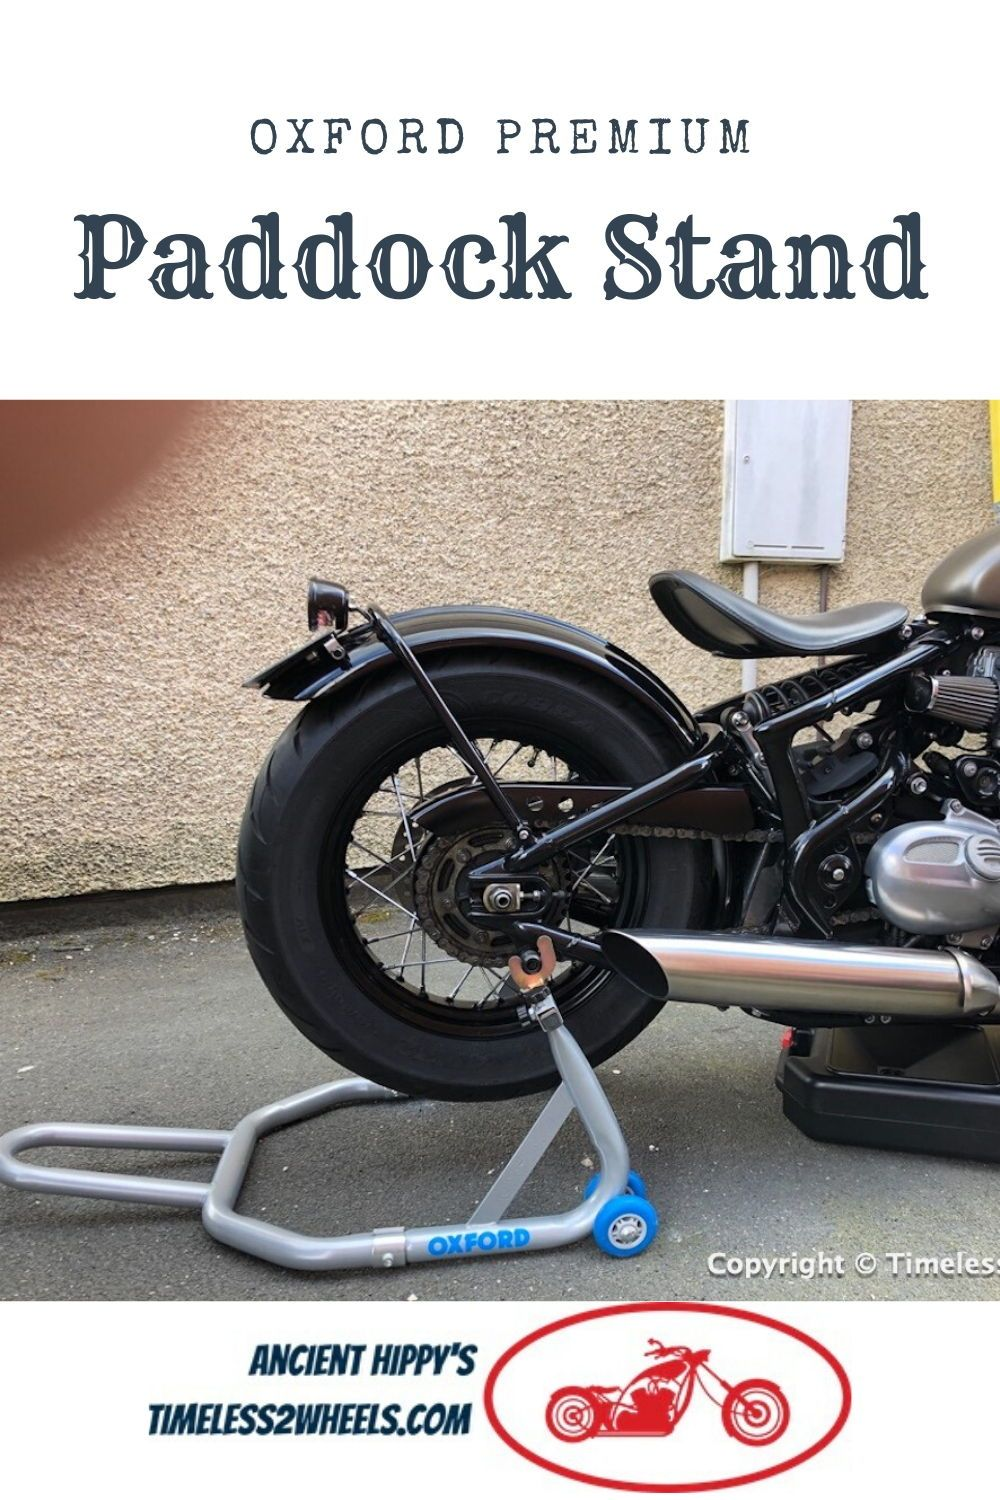 Oxford Paddock Stand Review Retro Motorcycle Oxford Triumph Bobber